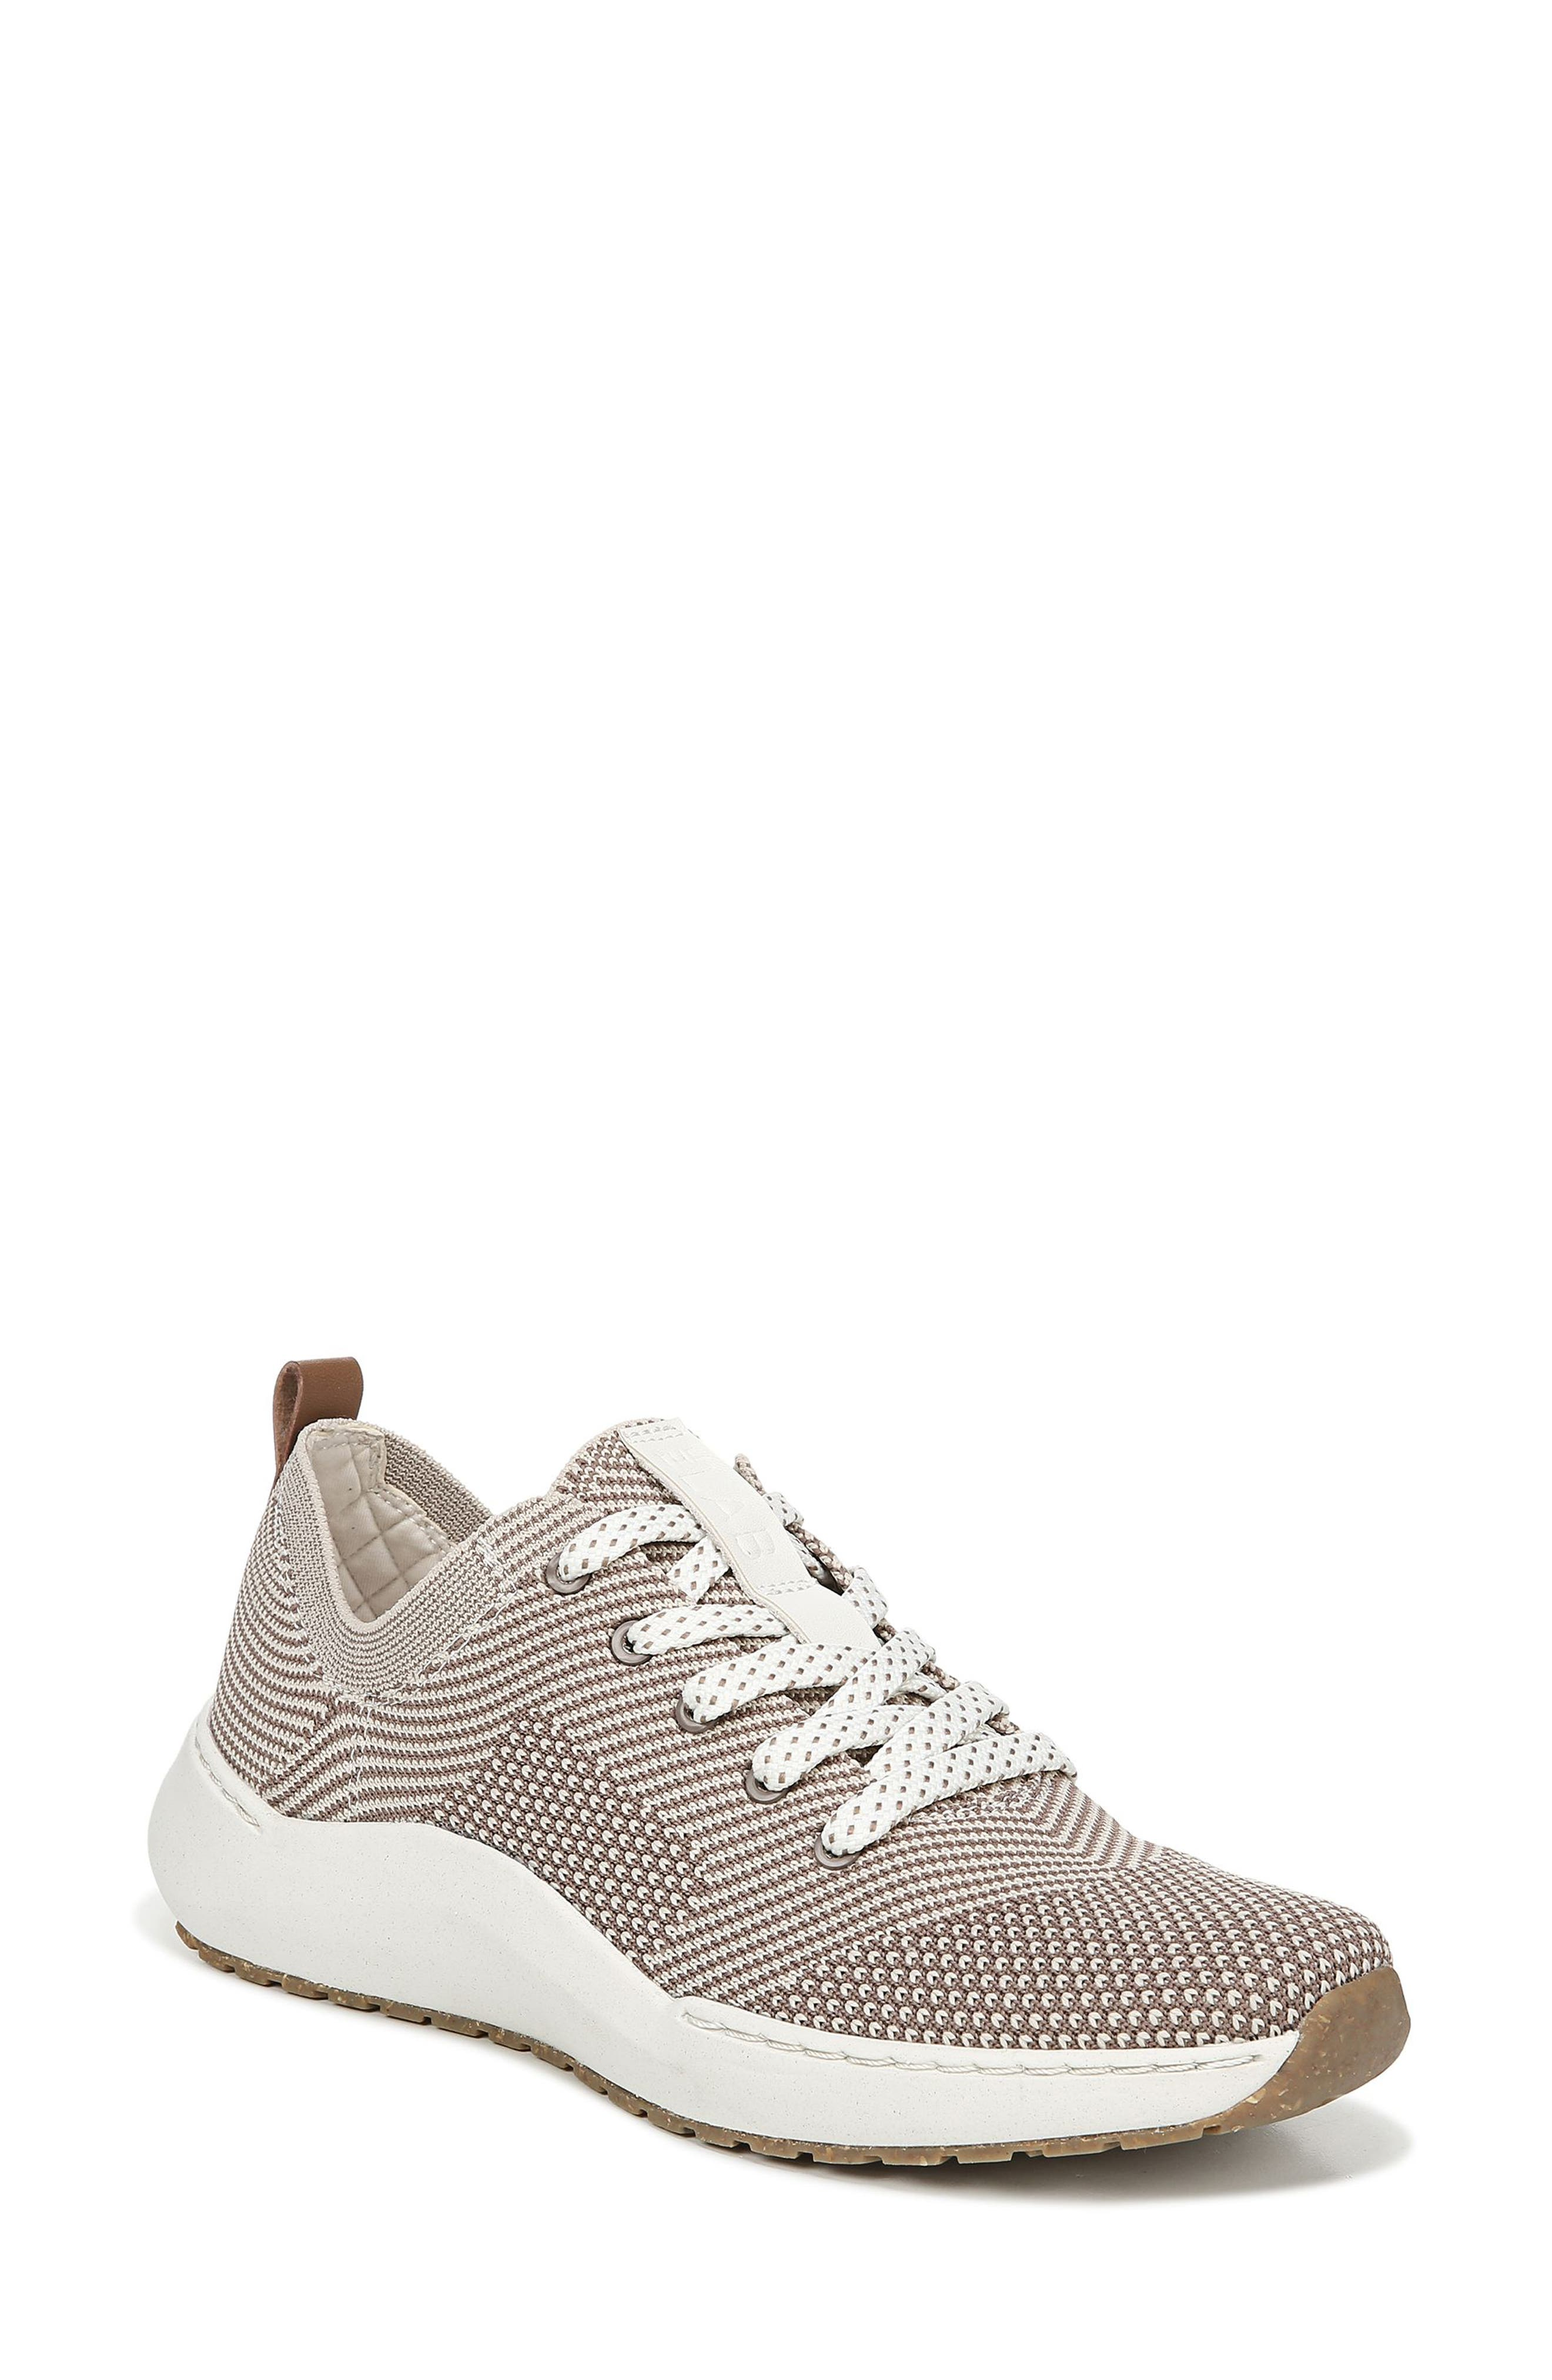 Herzog Recycled Knit Sneaker